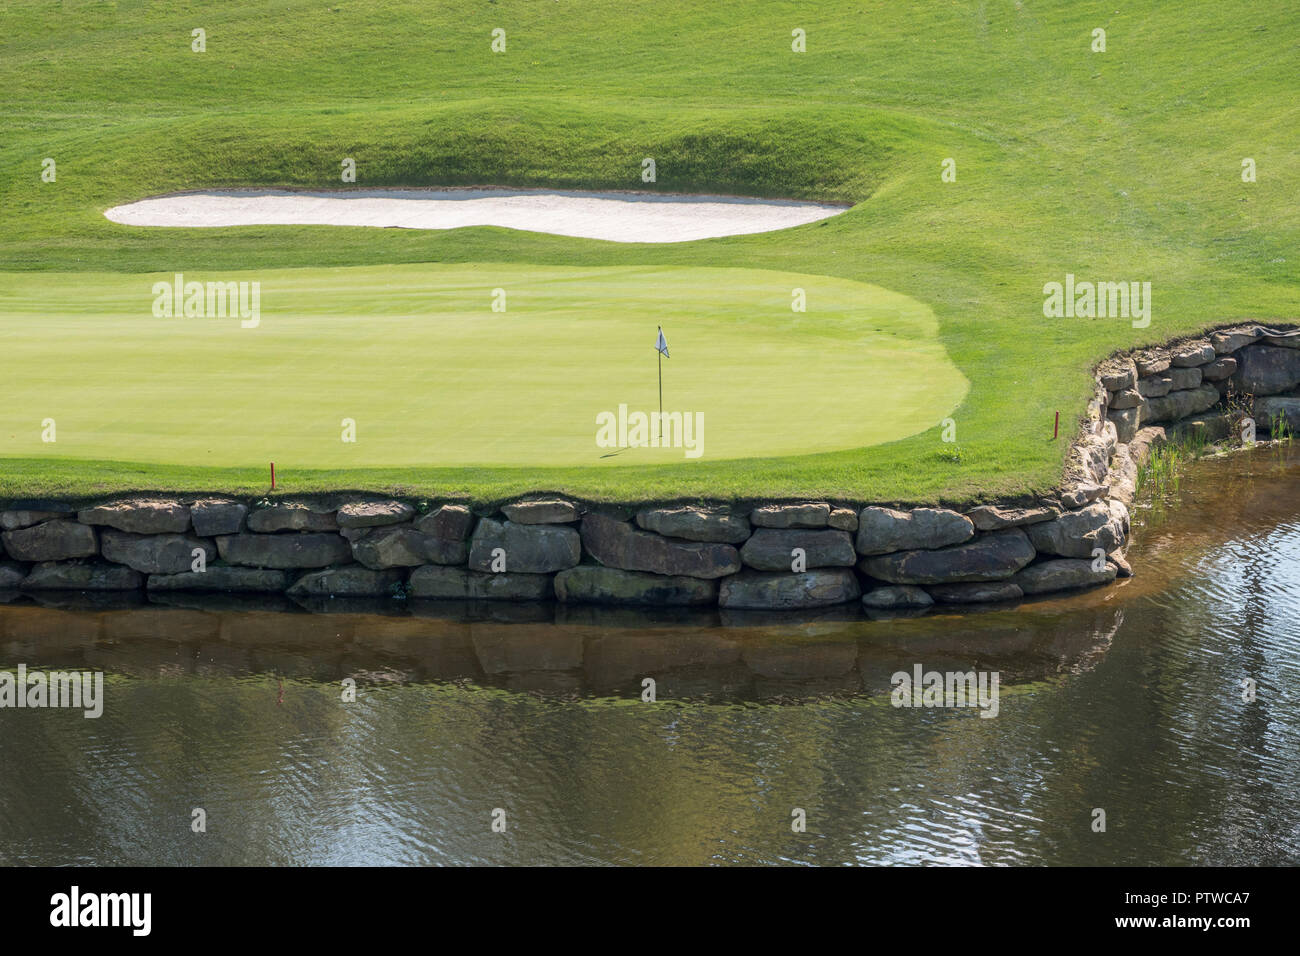 Challenging hole on luxury golf course with water and sand - Stock Image